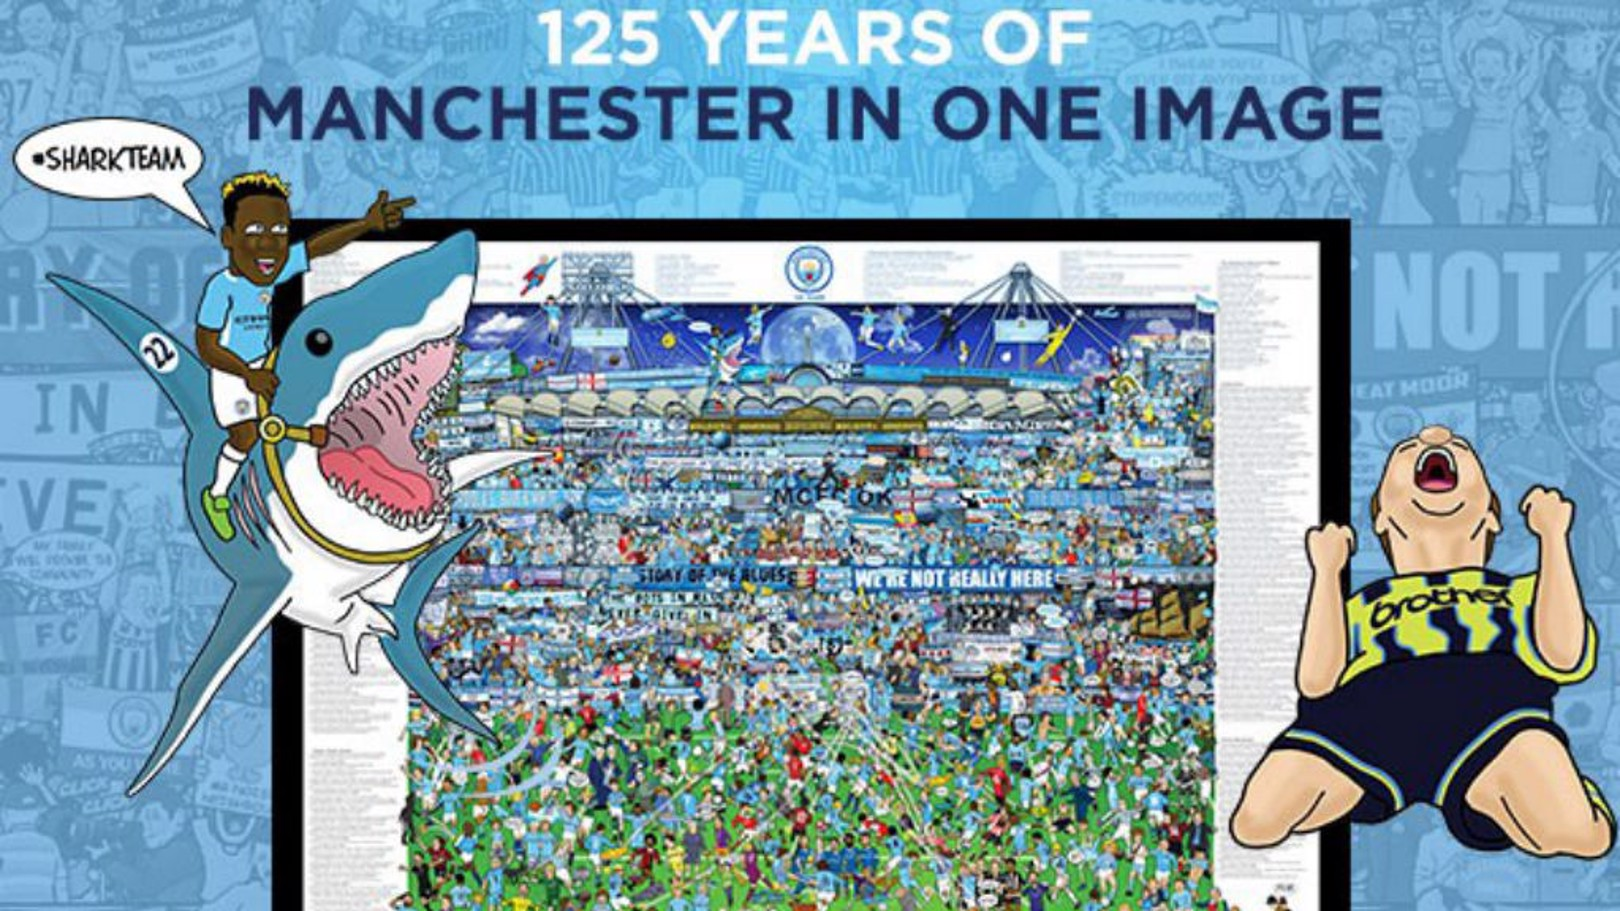 MISHMASH: Celebrating our 125-year history in one image